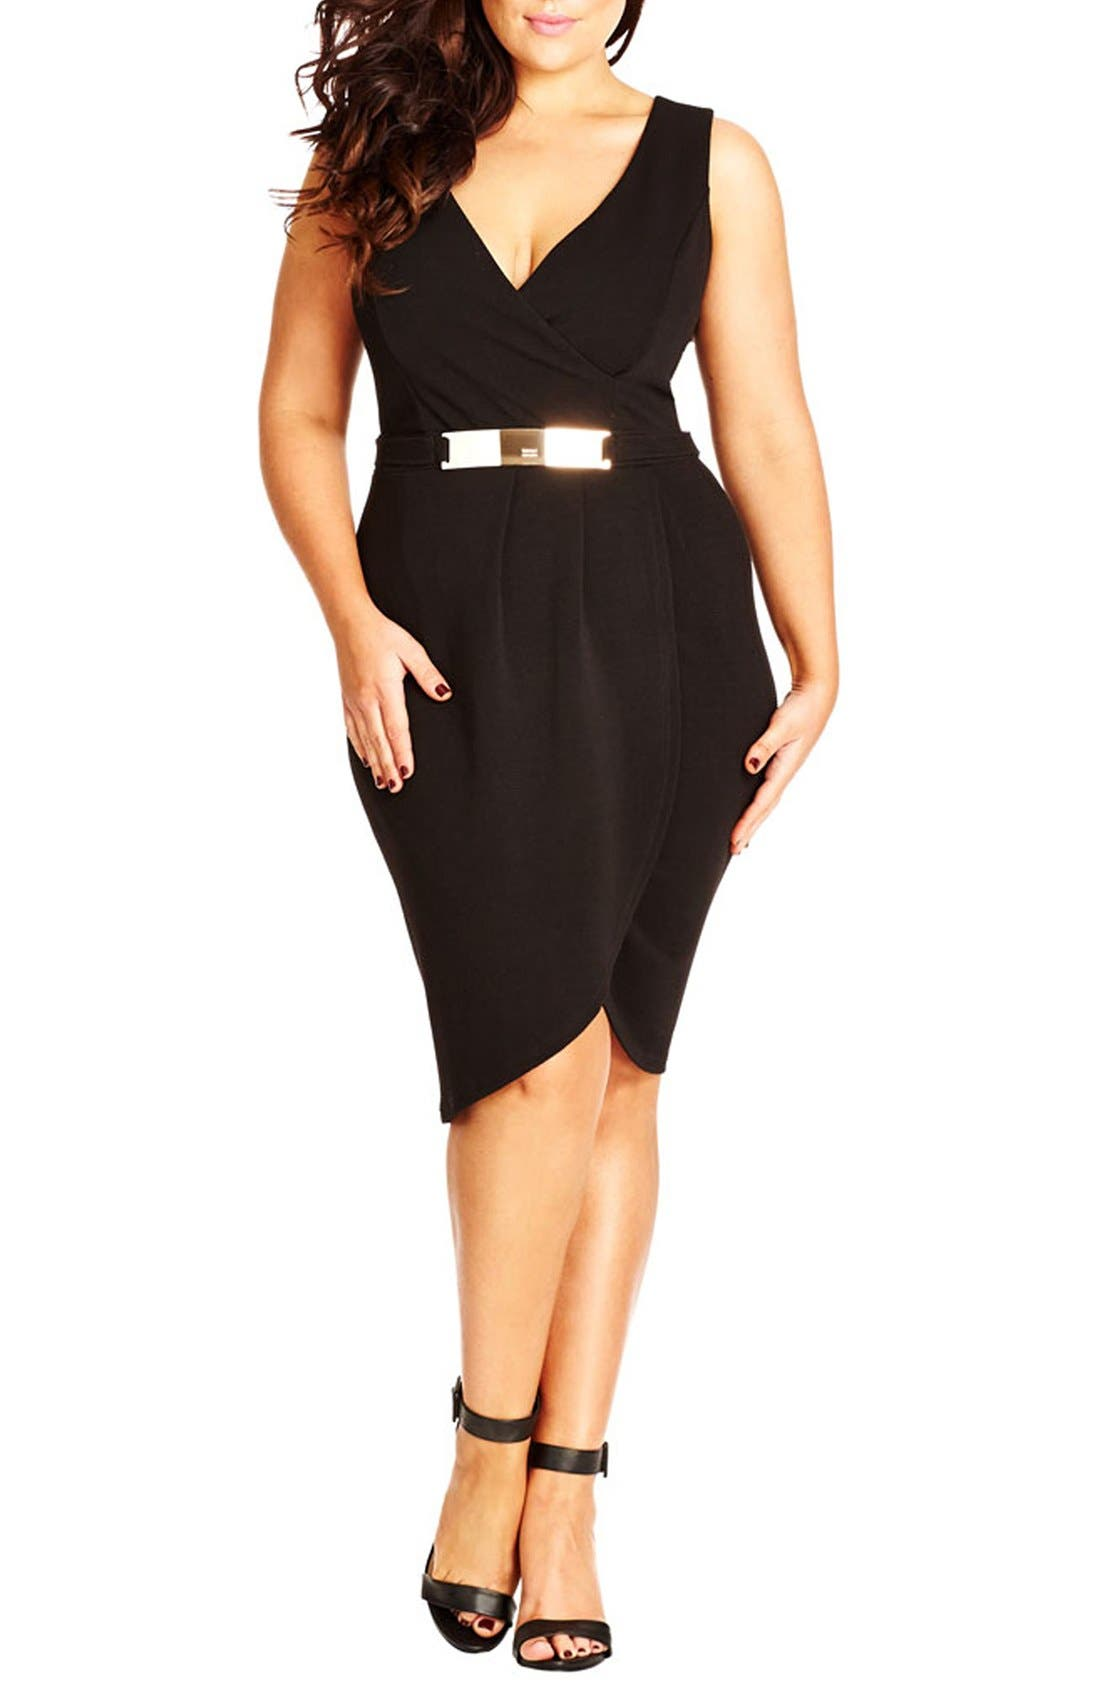 Alternate Image 1 Selected - City Chic 'Magic Wrap' Sleeveless Faux Wrap Dress (Plus Size)